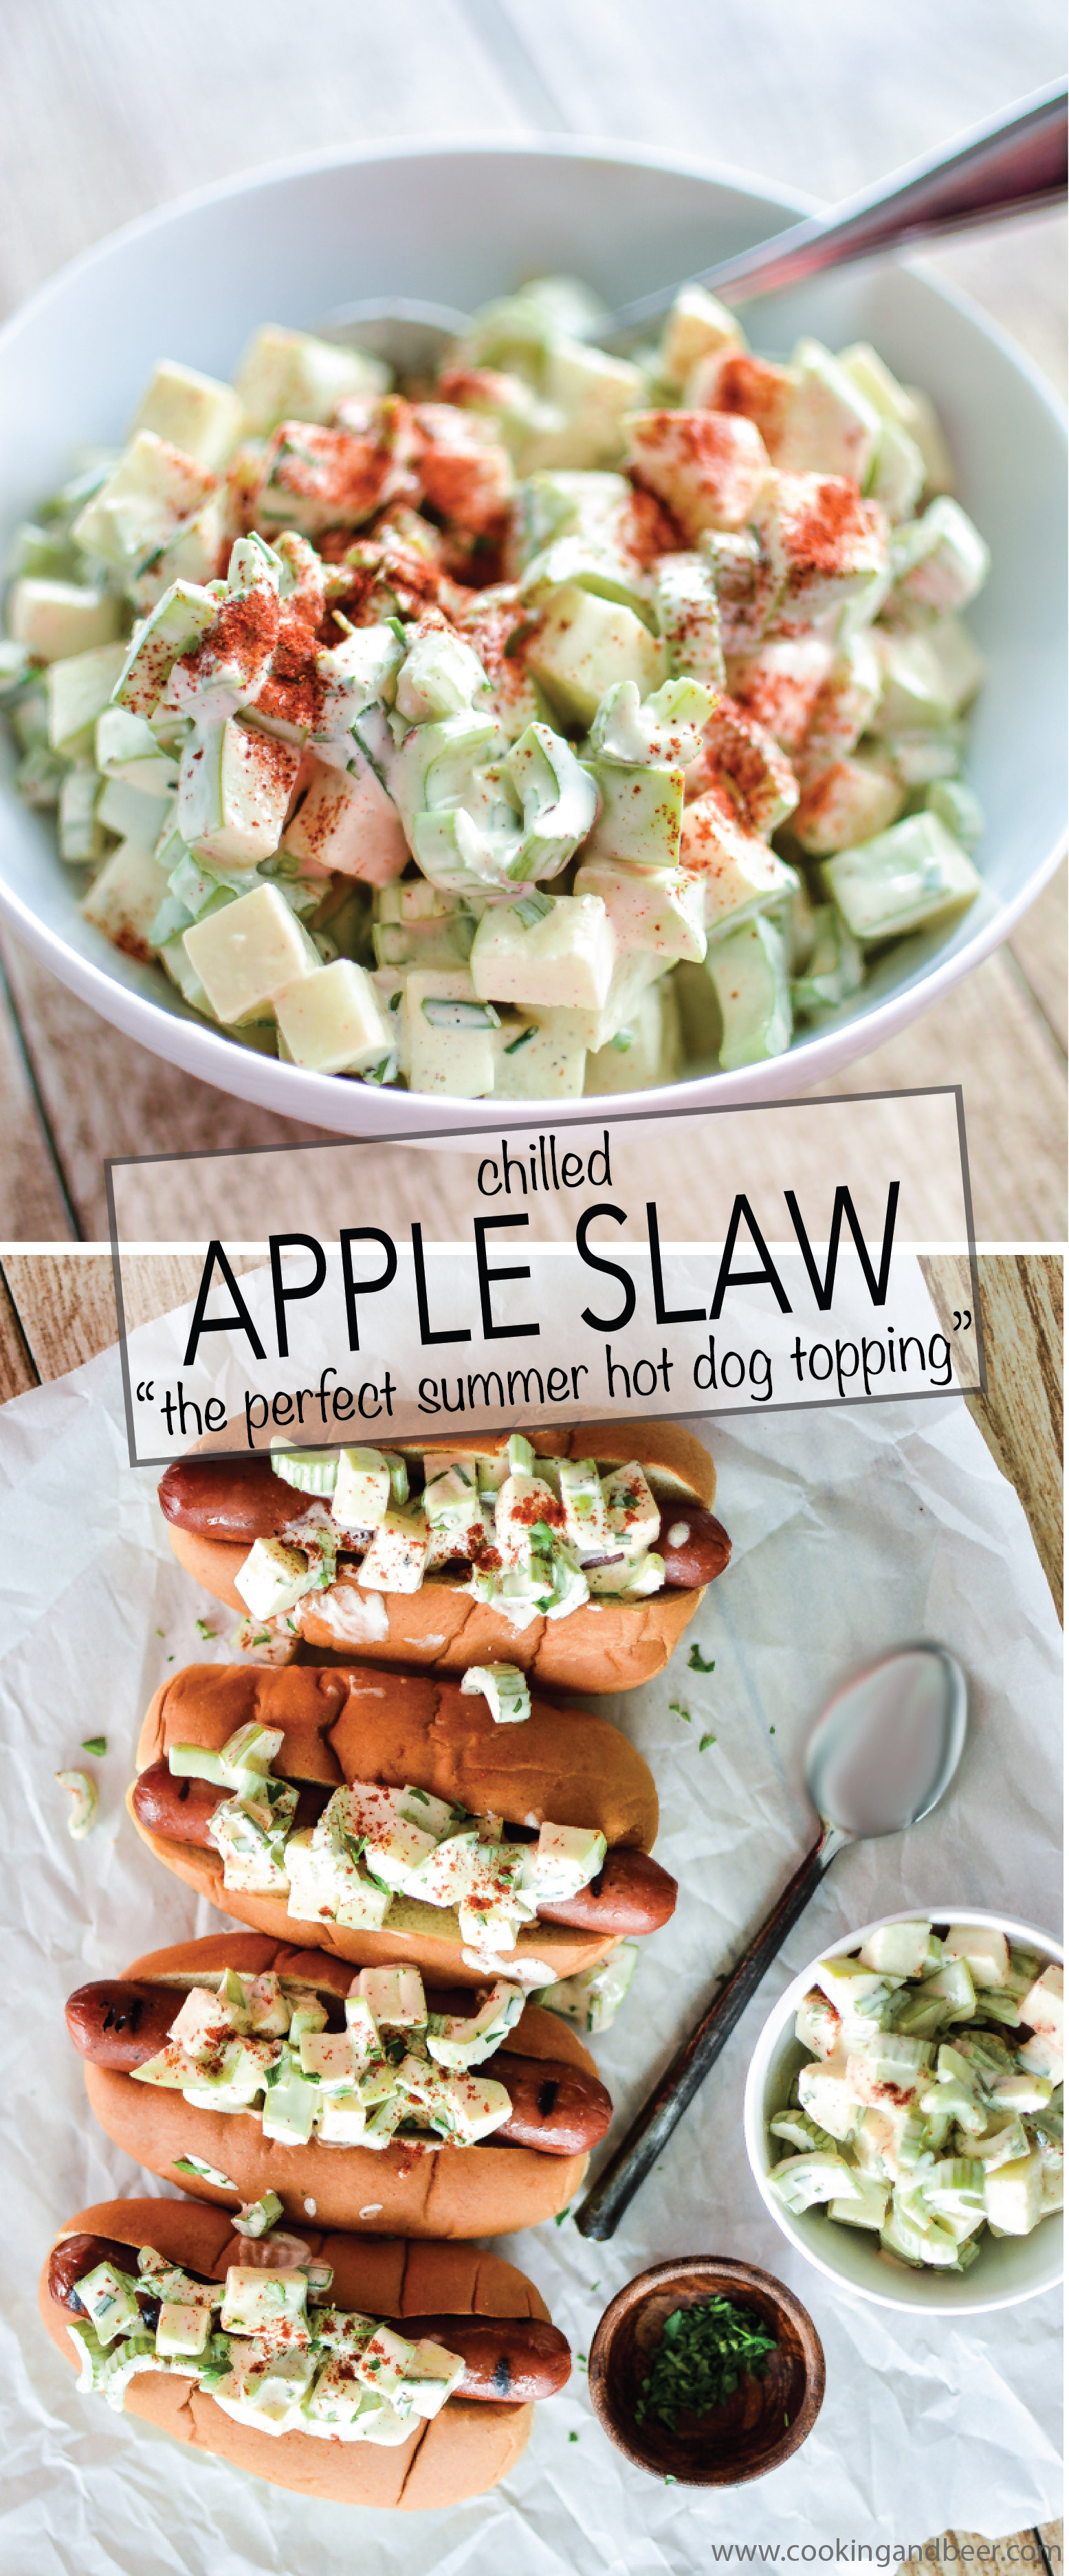 Chilled apple slaw recipe makes for the perfect topping on a summer hot dog! | www.cookingandbeer.com